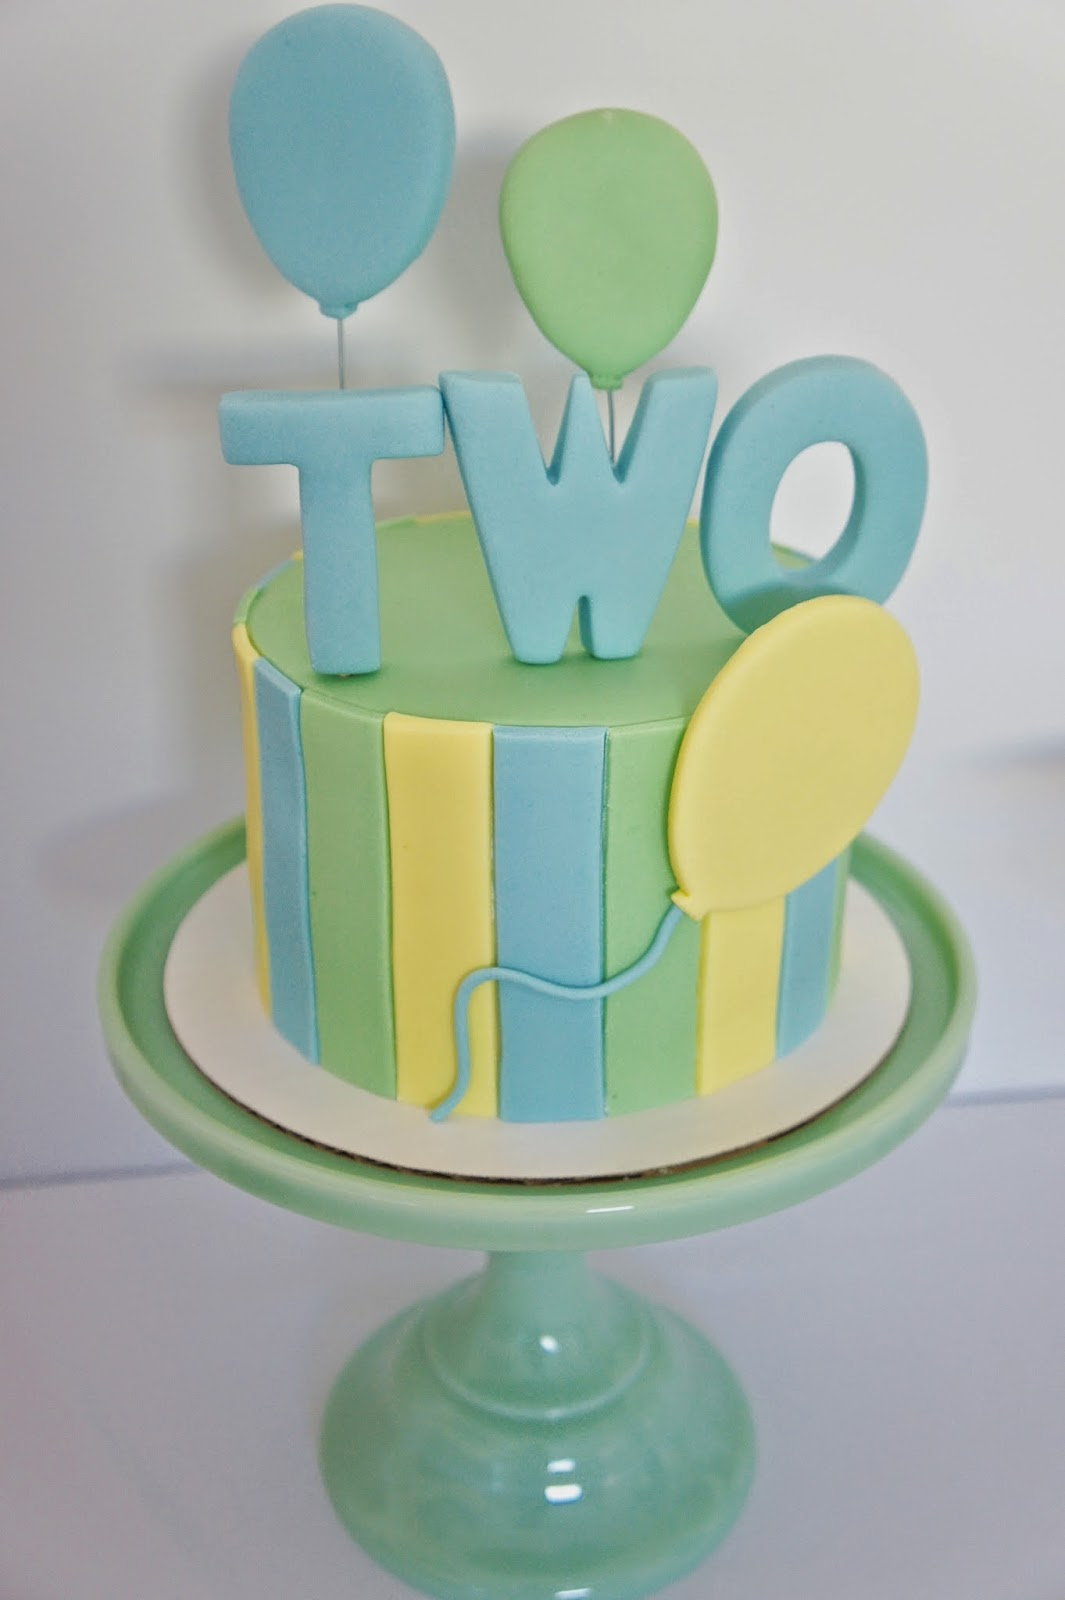 WEDDING CAKES - KIDS CAKES - CUSTOM CAKES  BEST BURBANK BAKERY